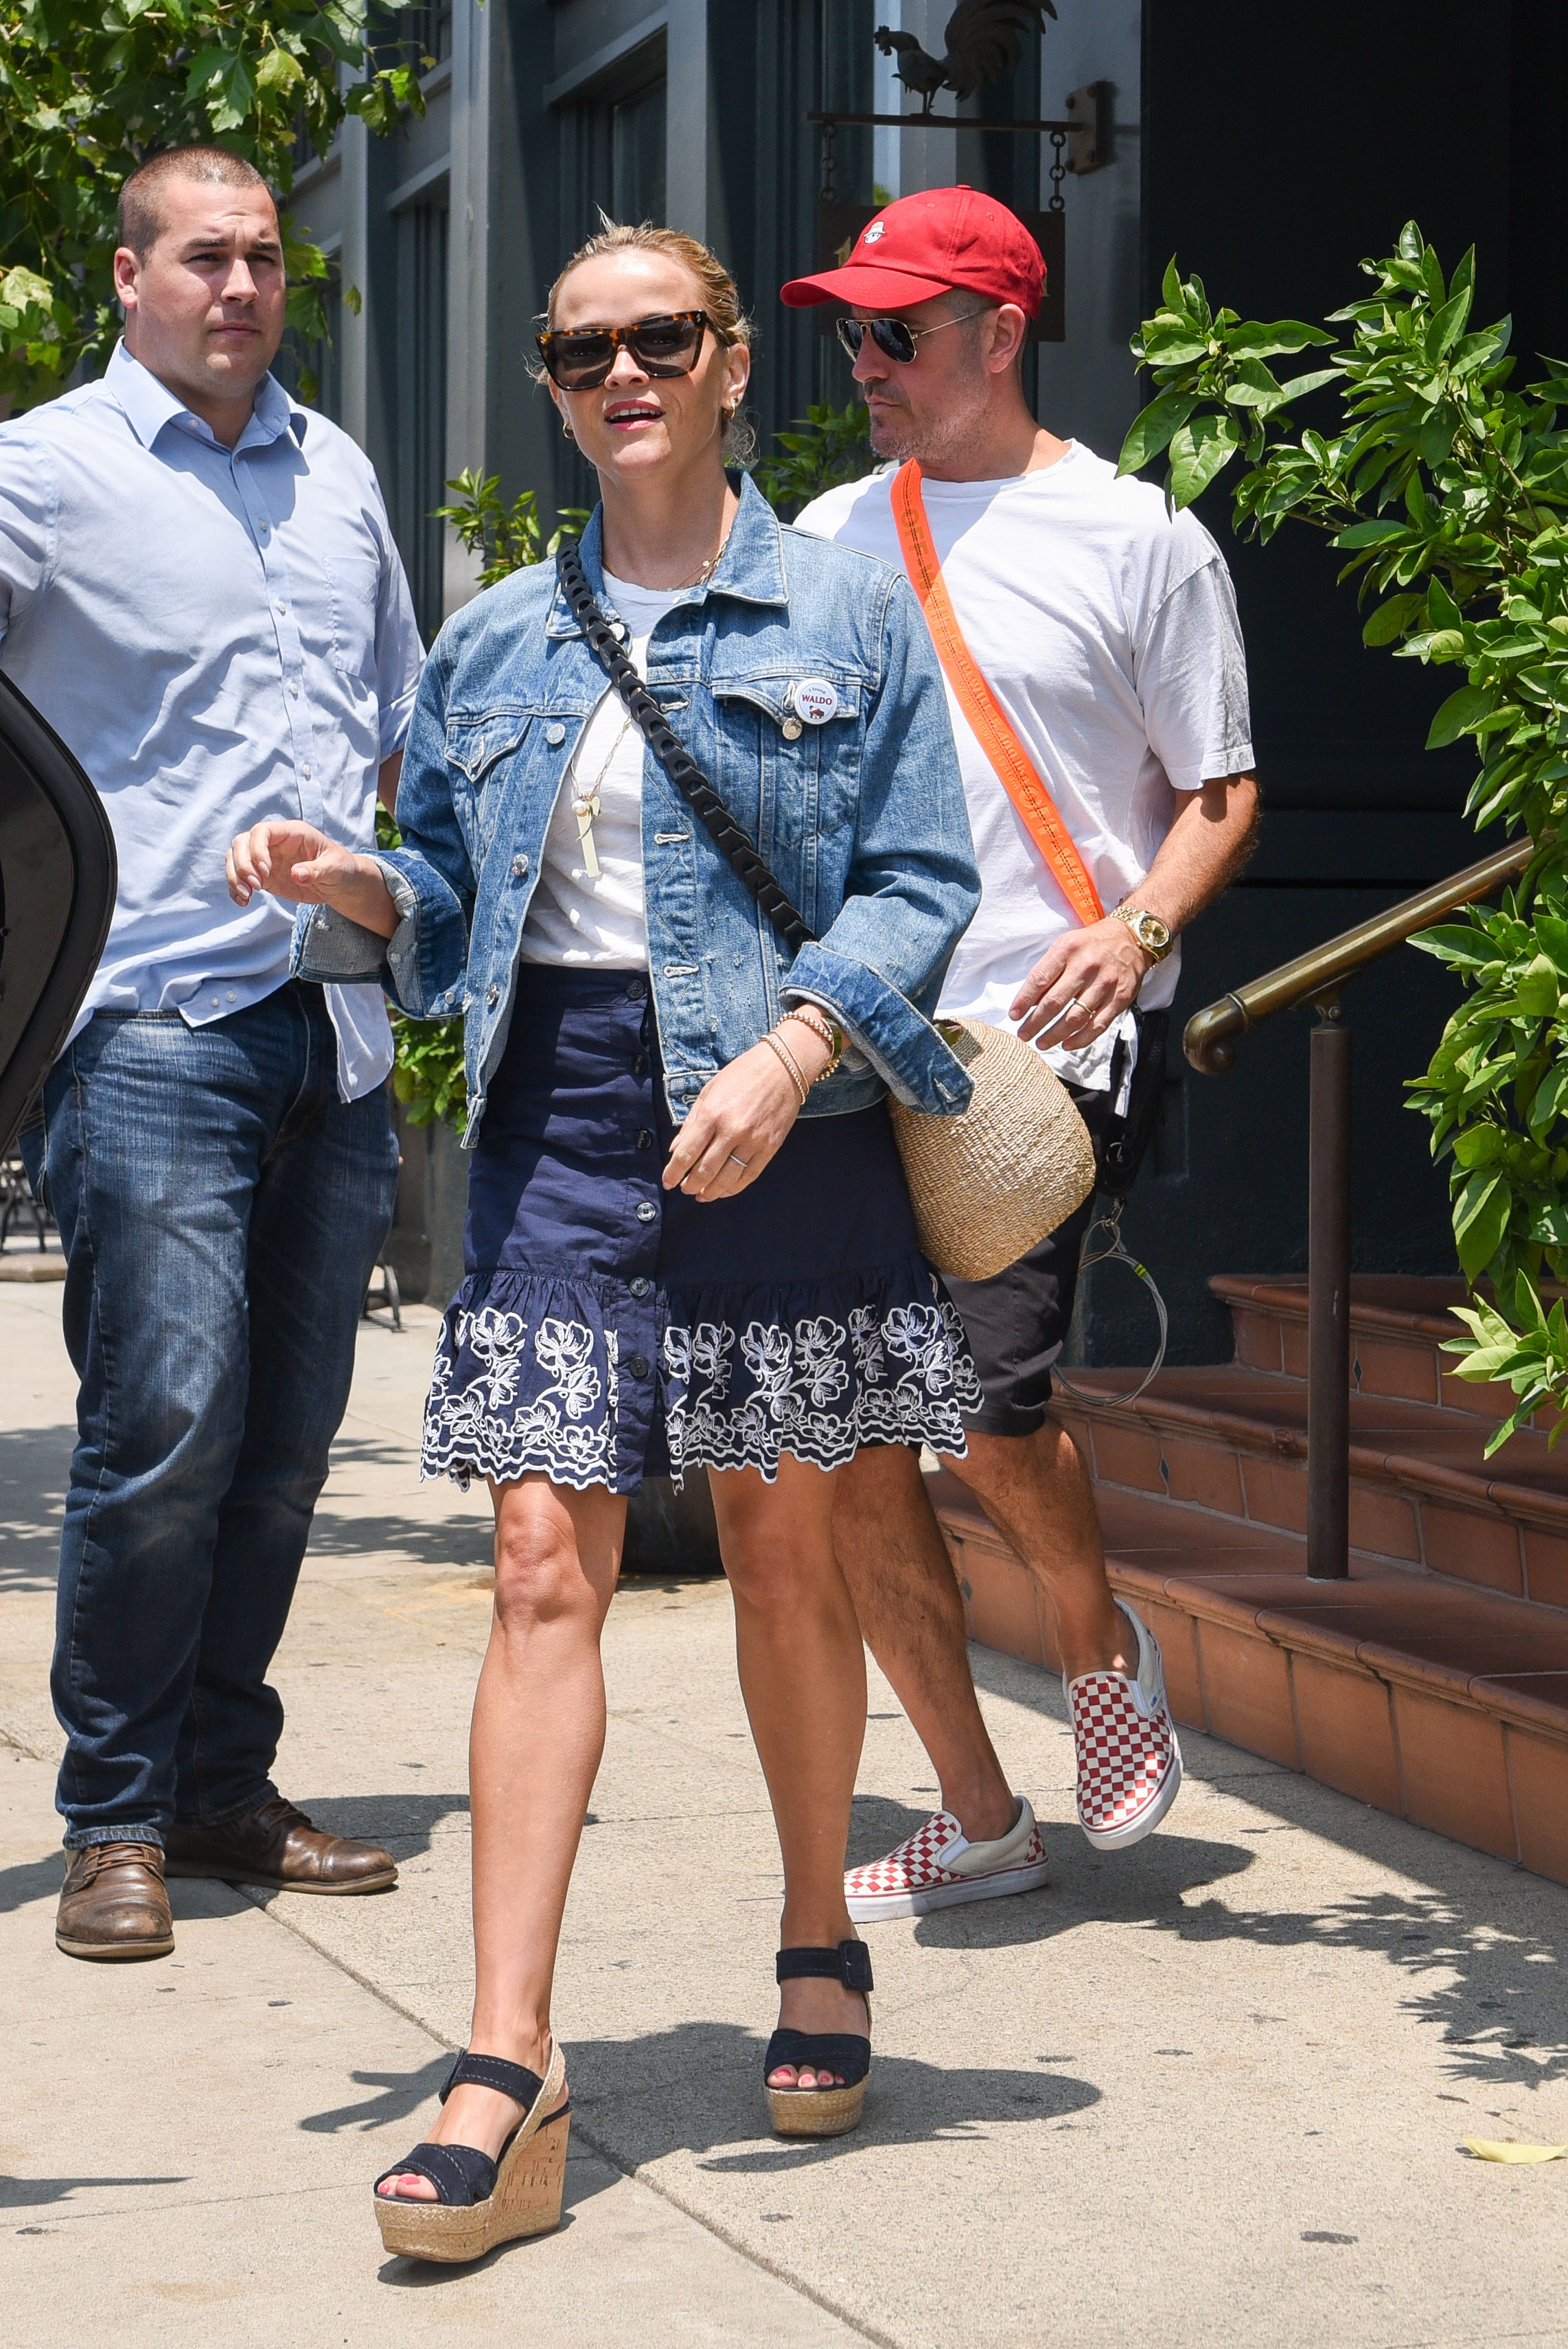 Reese Witherspoon in a Blue Denim Jacket Leaves Tavern Restaurant in Brentwood 07/28/2018